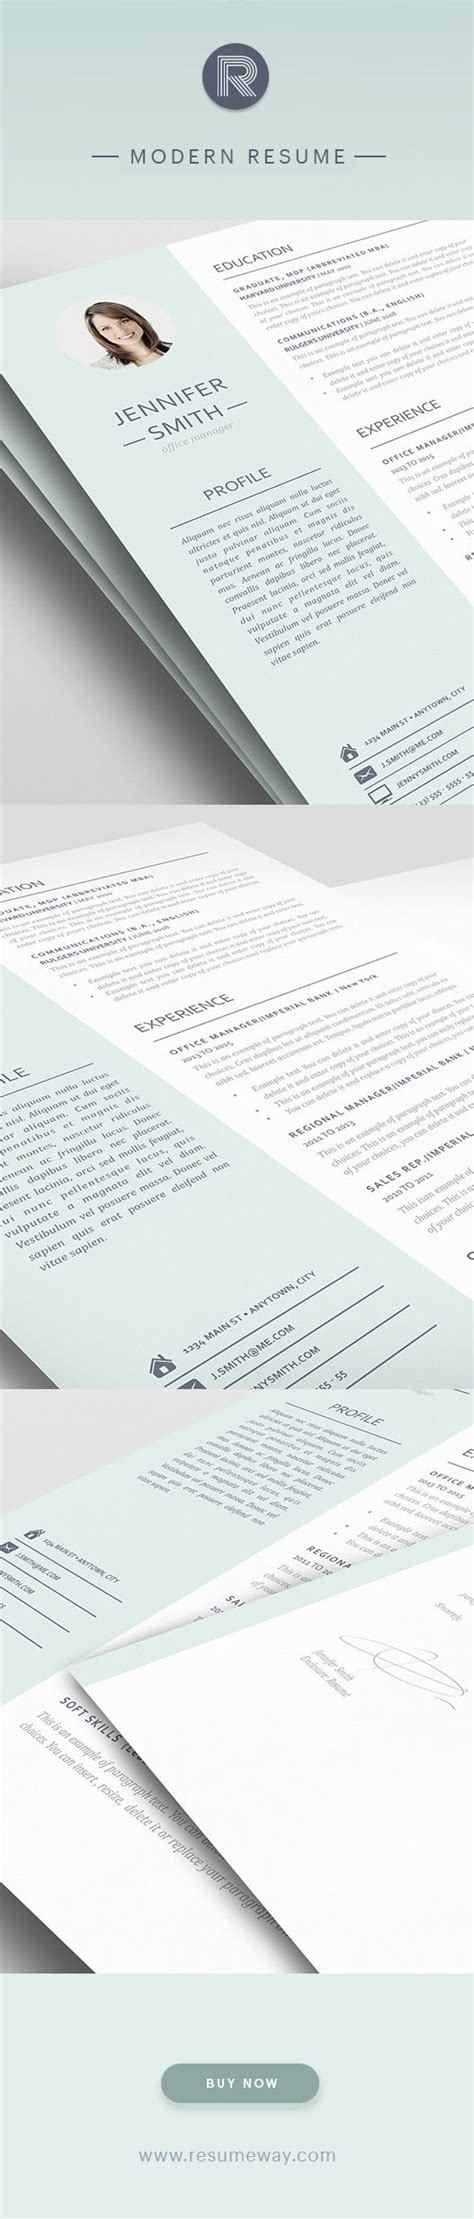 1000 images about modern resume templates on